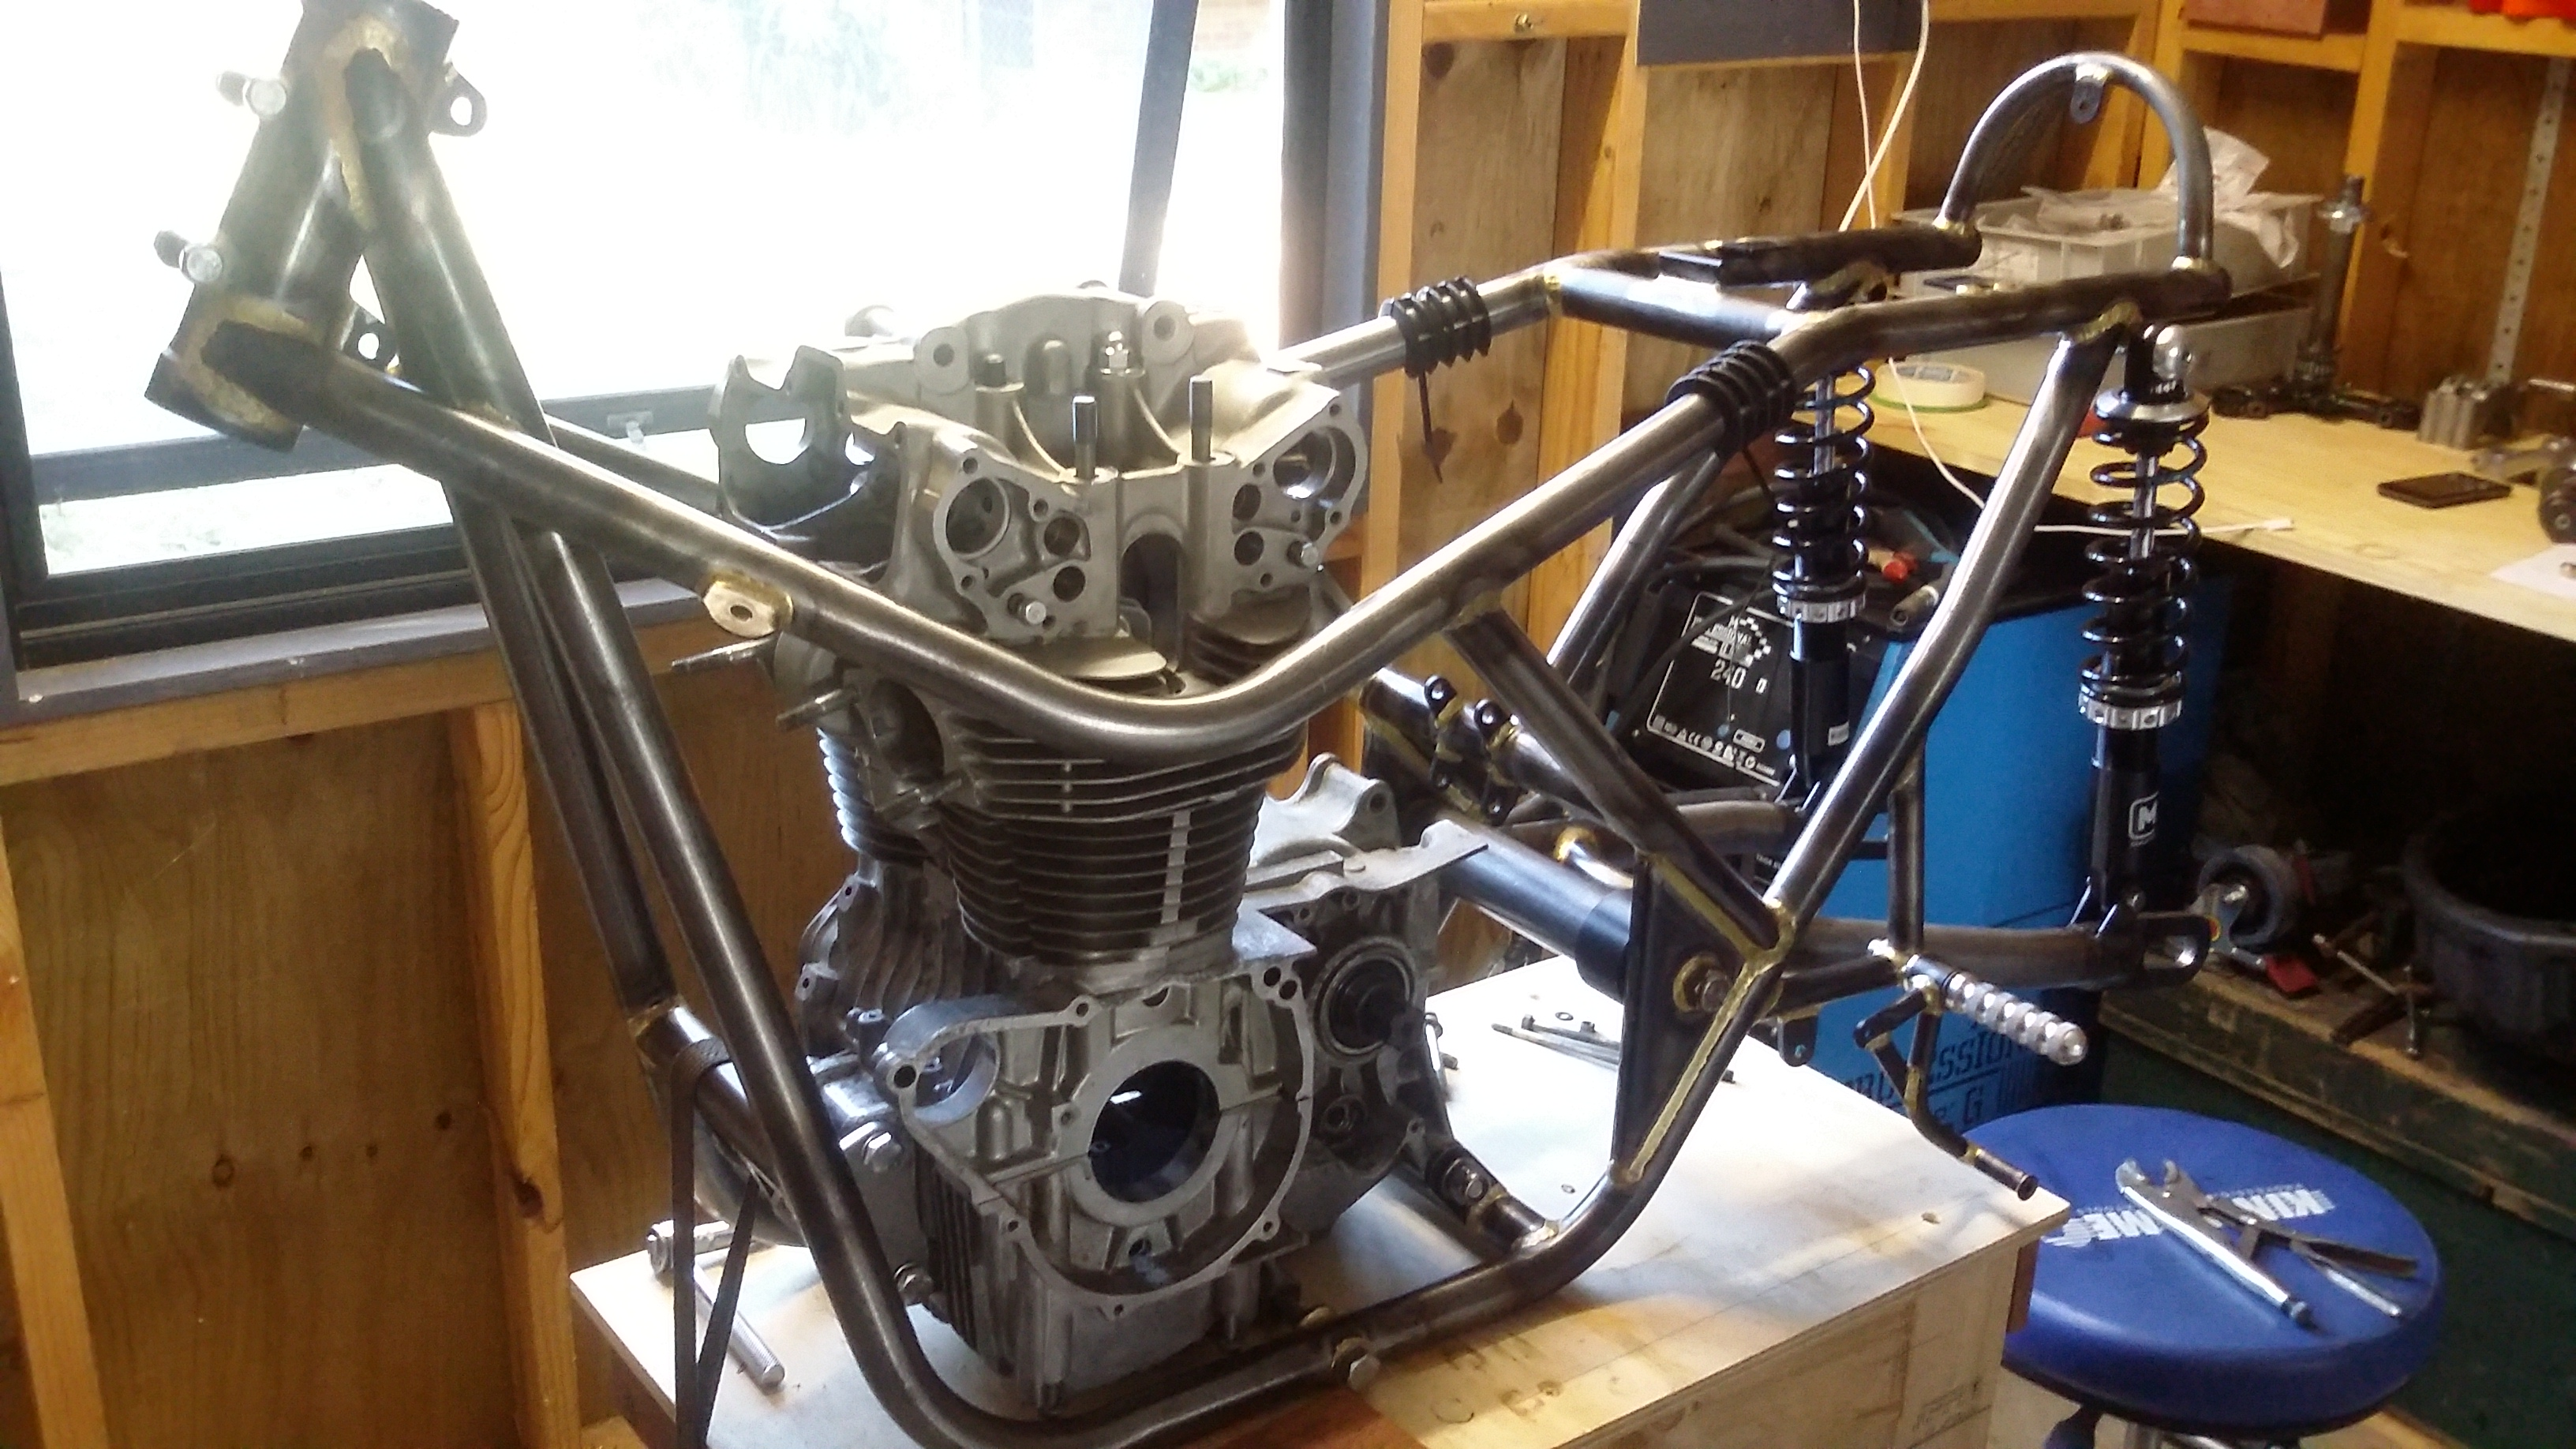 Drixton 500 twin build-20150322_163027.jpg